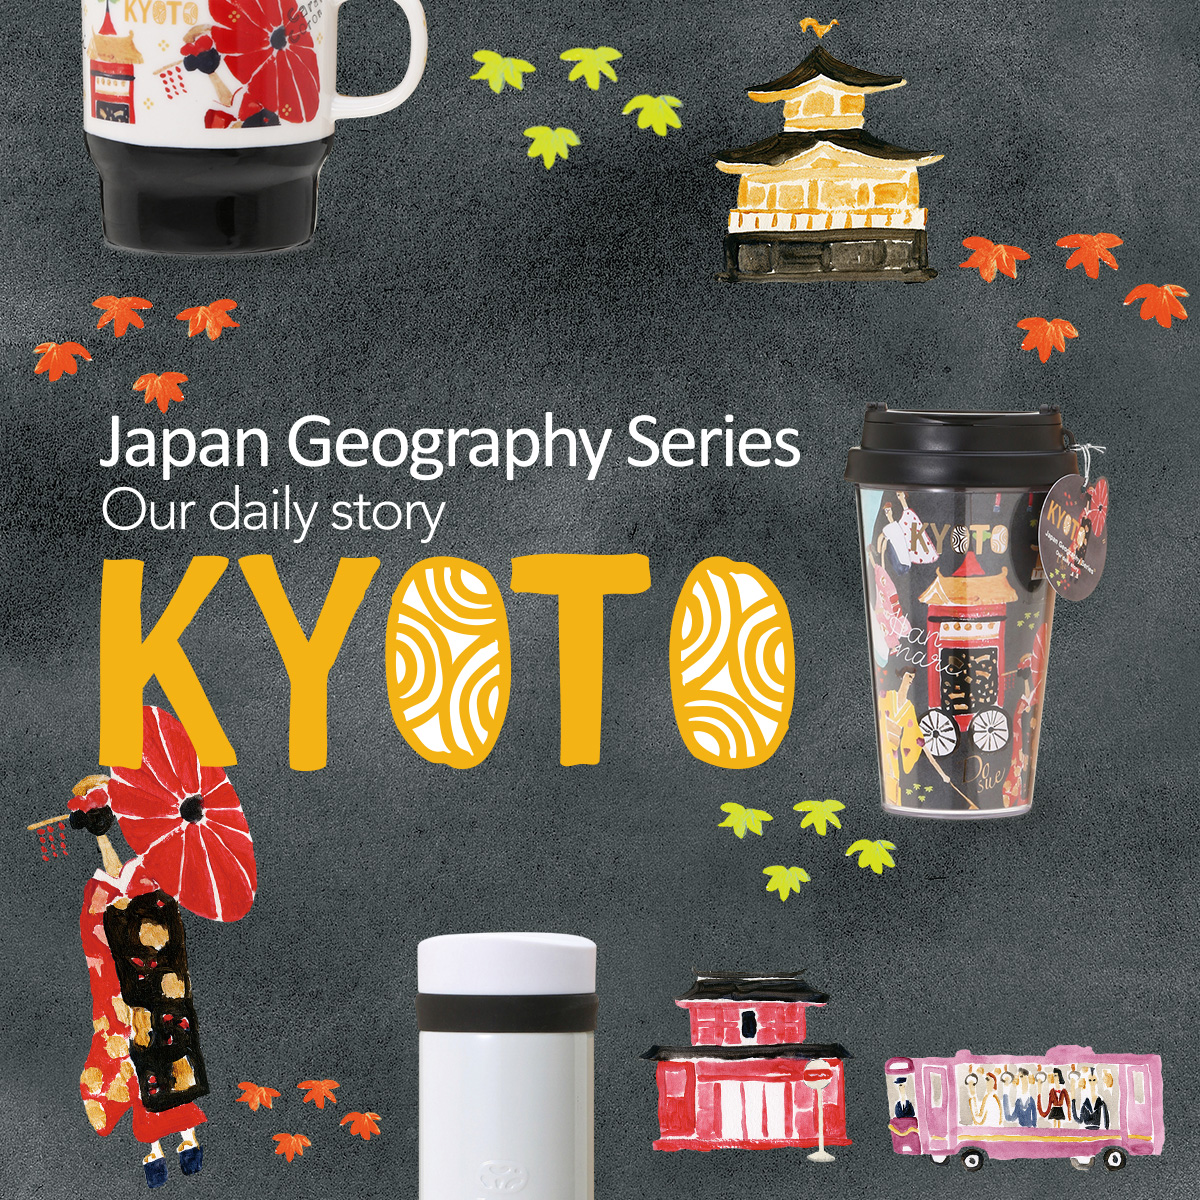 Japan Geography Series 京都